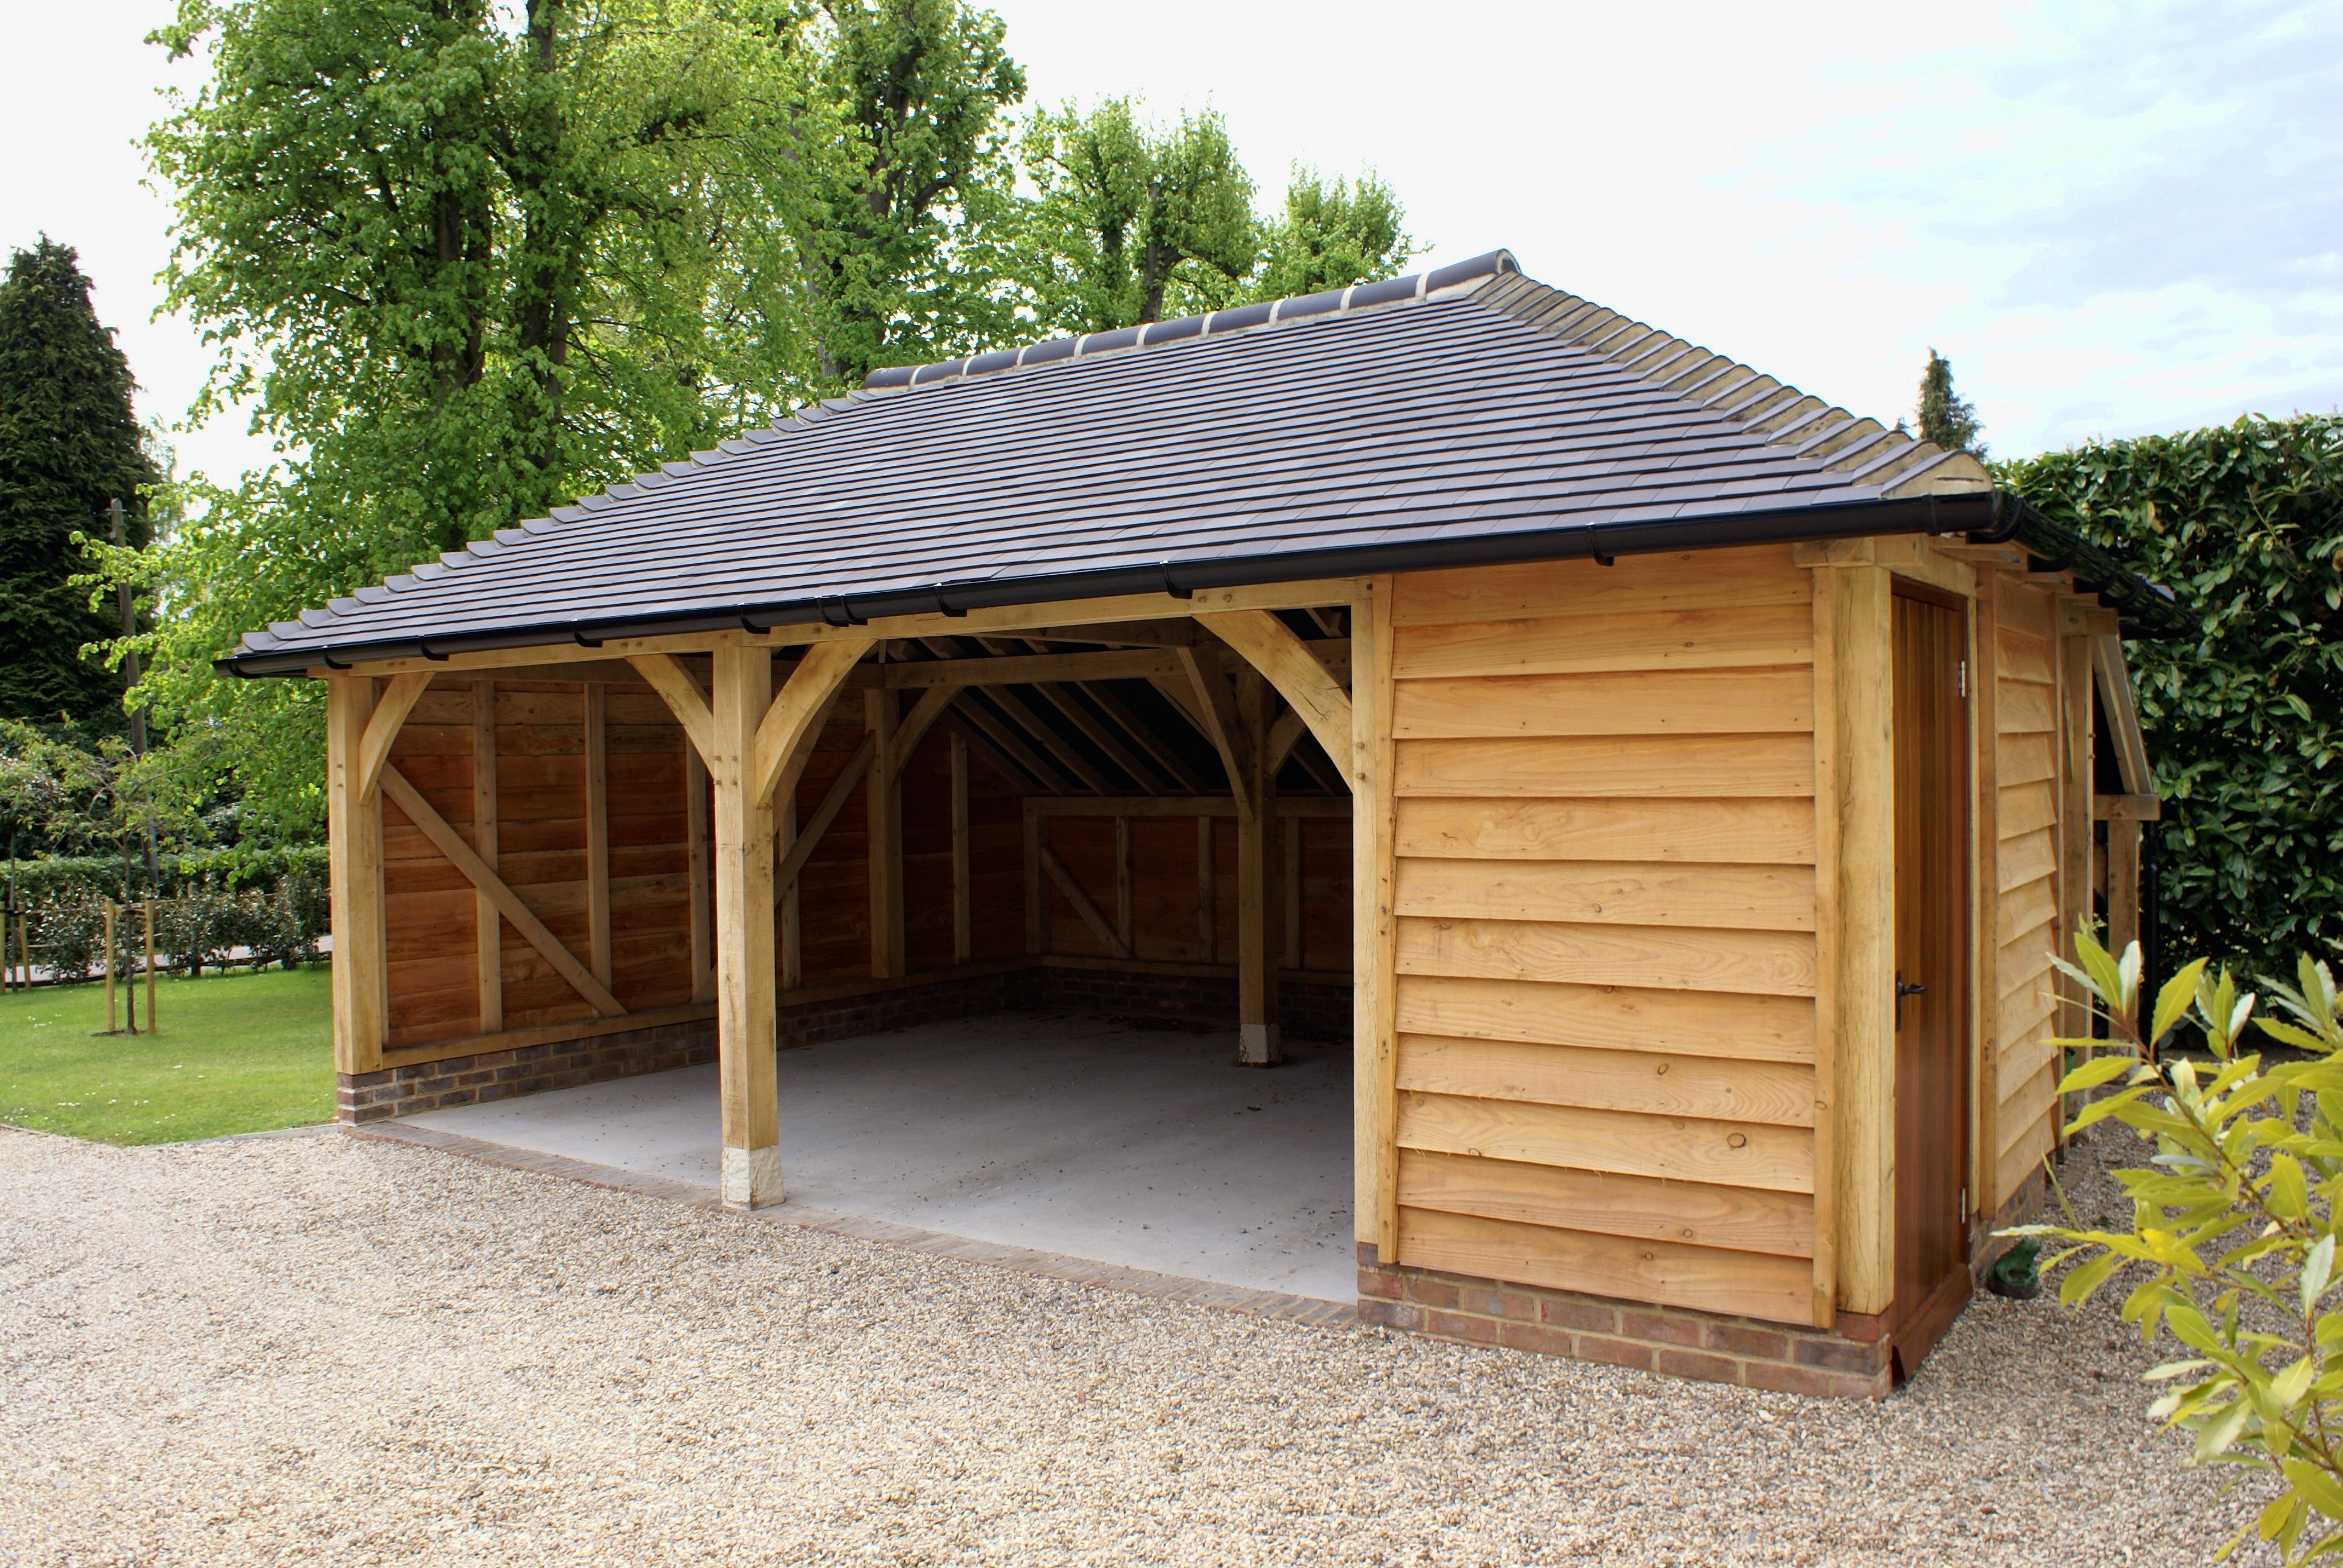 2 & a half bay oak frame garage with a fully hipped roof